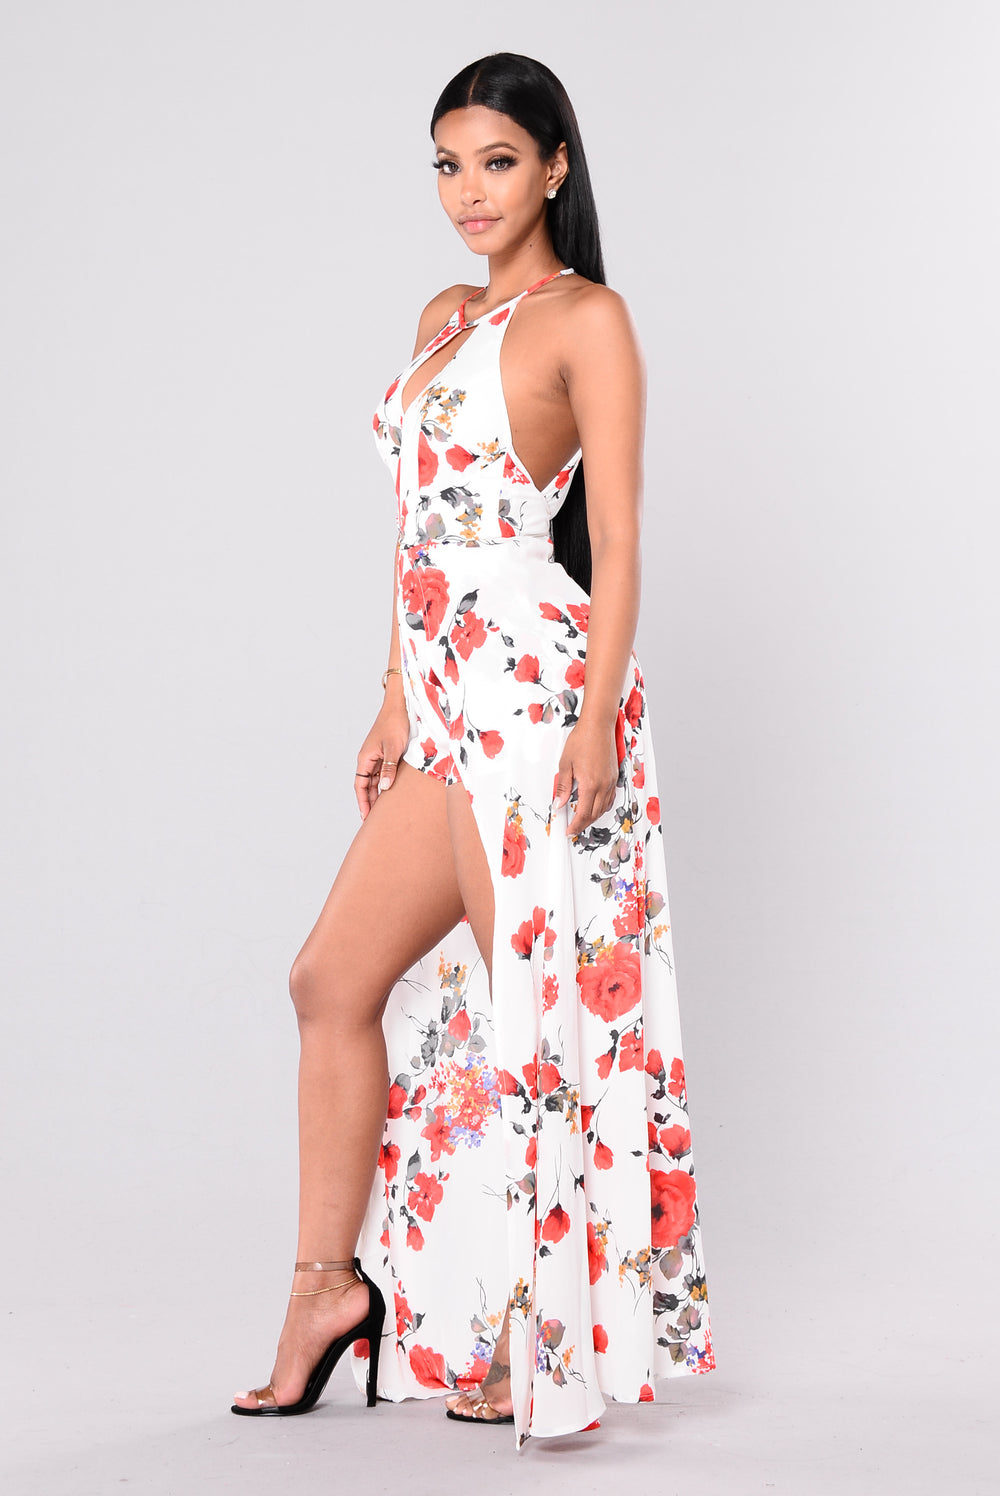 Bottomless Mimosas Dress - Ivory Floral